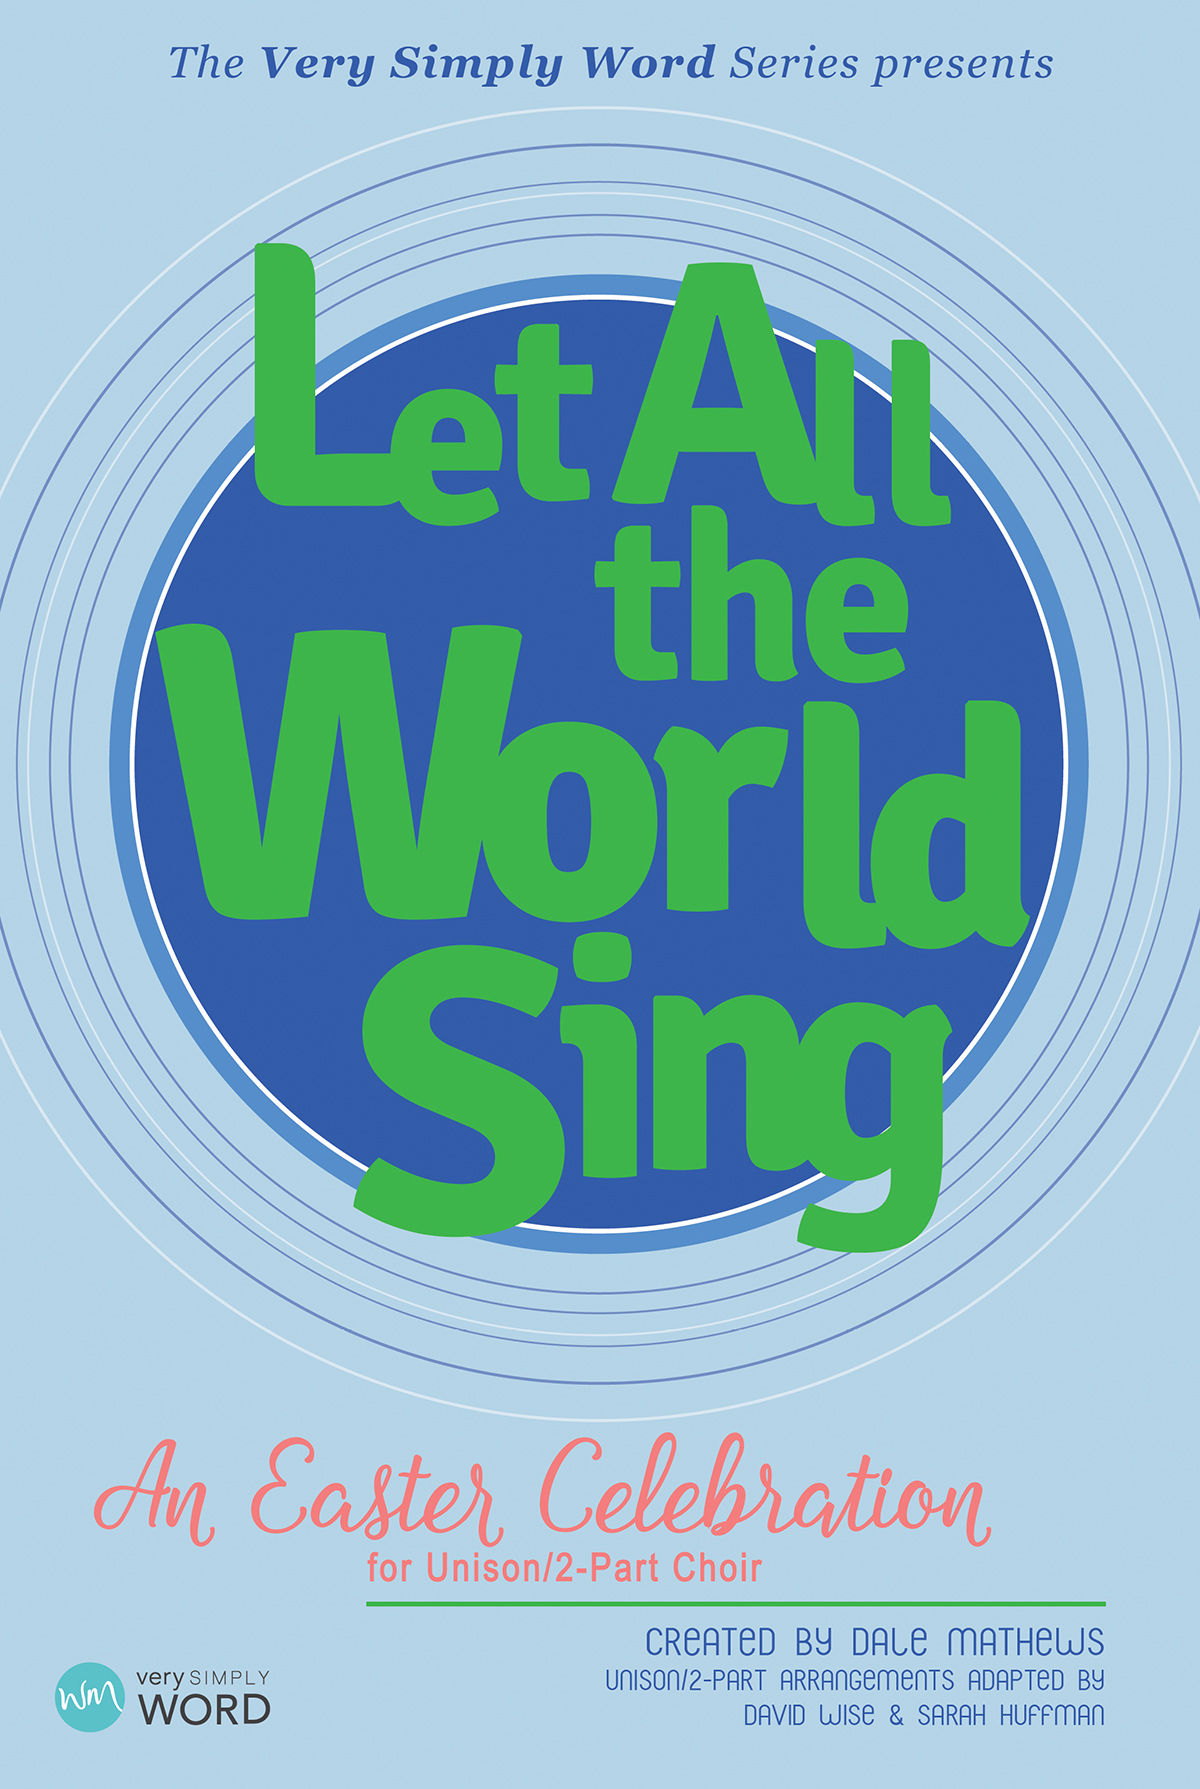 Let All the World Sing